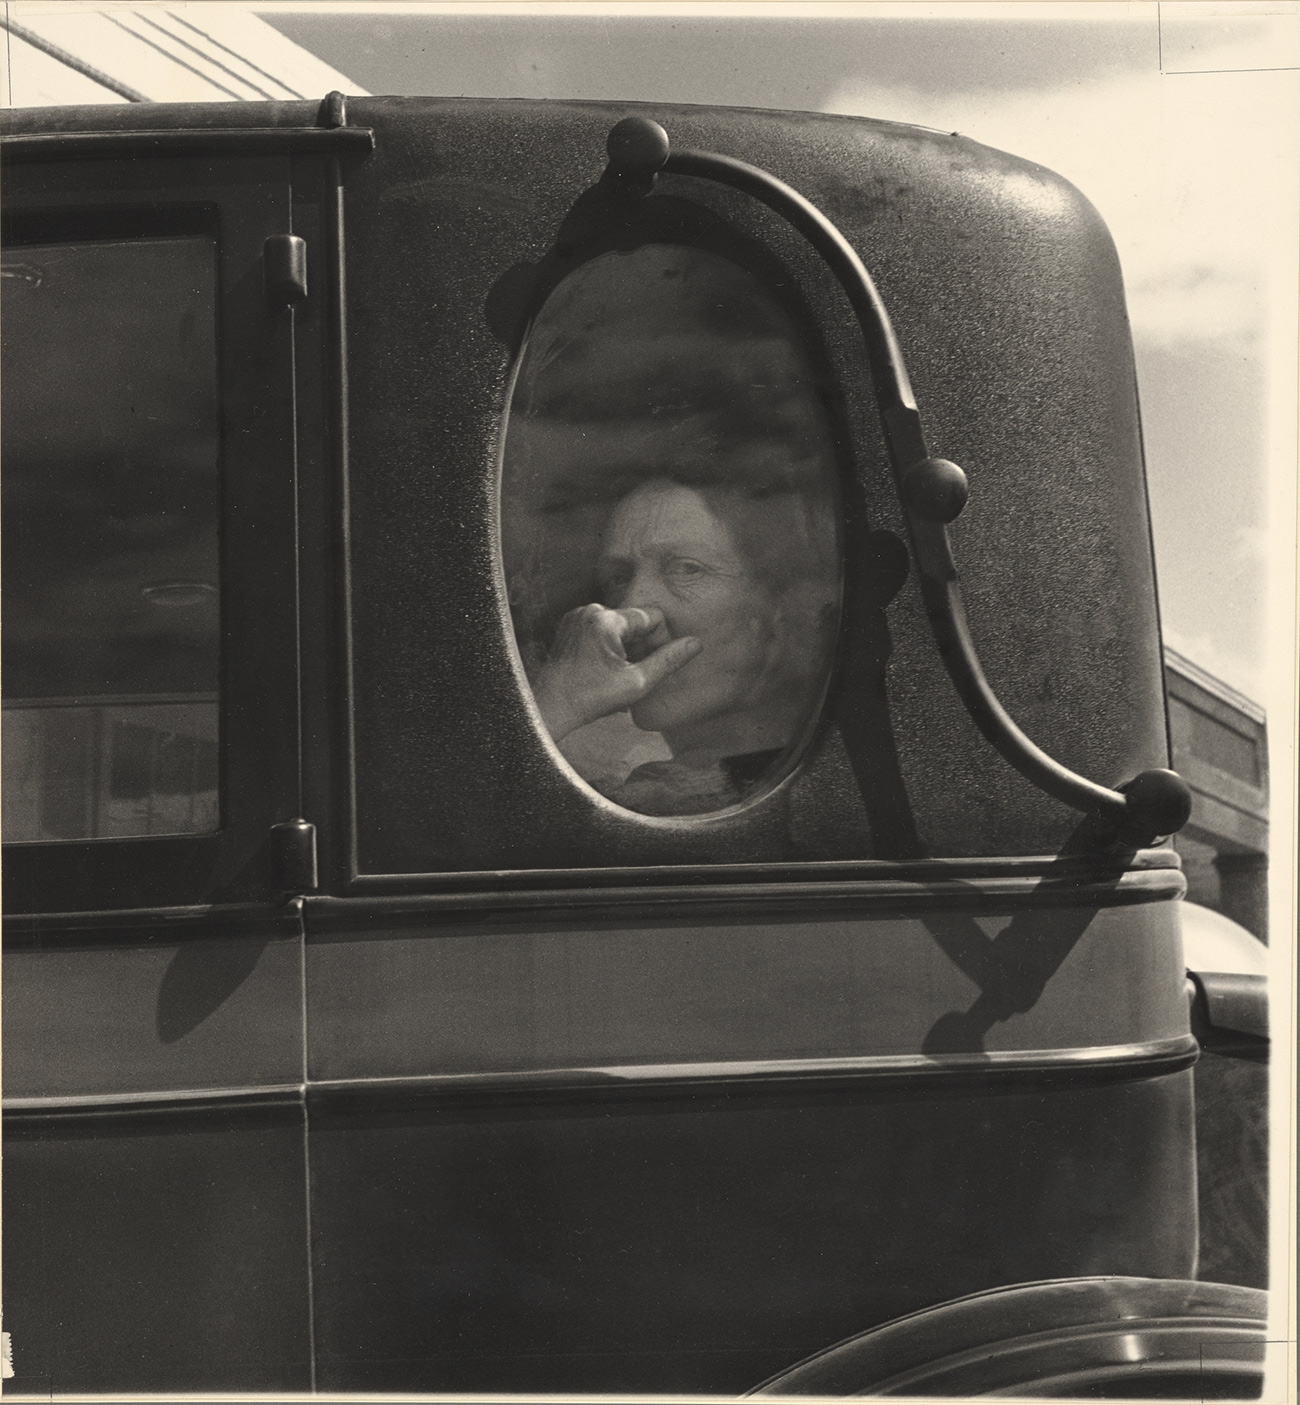 A woman holding a kerchief to her mouth looks out of the window of an old vehicle.